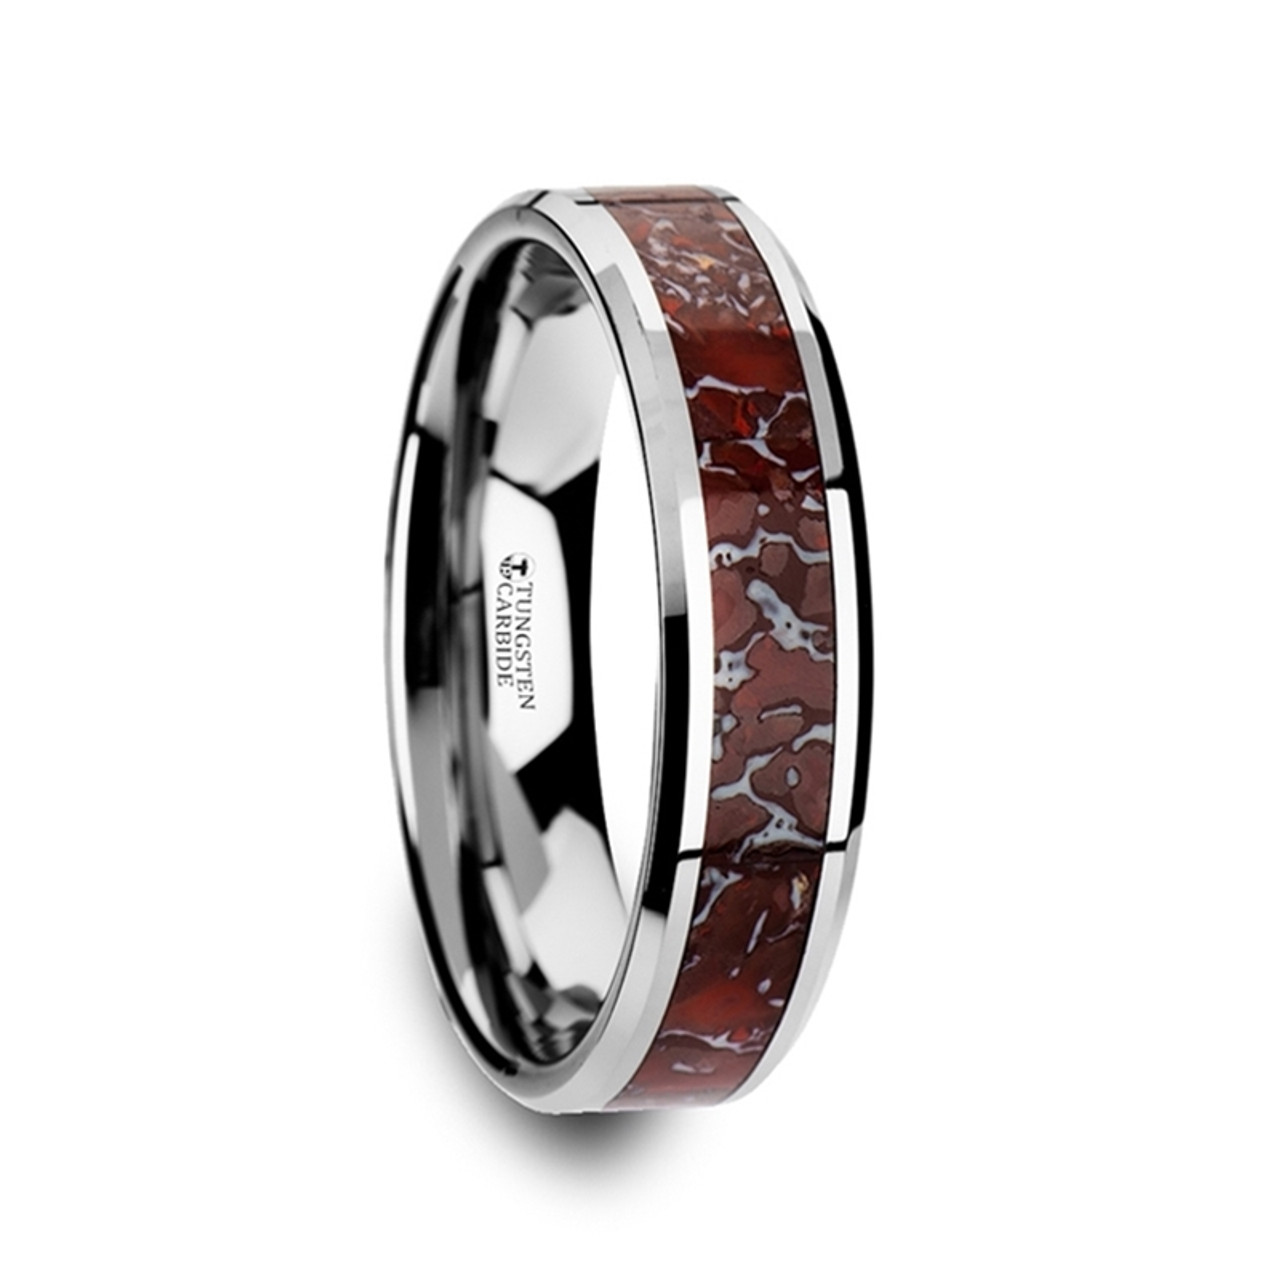 tungsten carbide rings inlay dinosaur dyscinitus band red wedding with bone